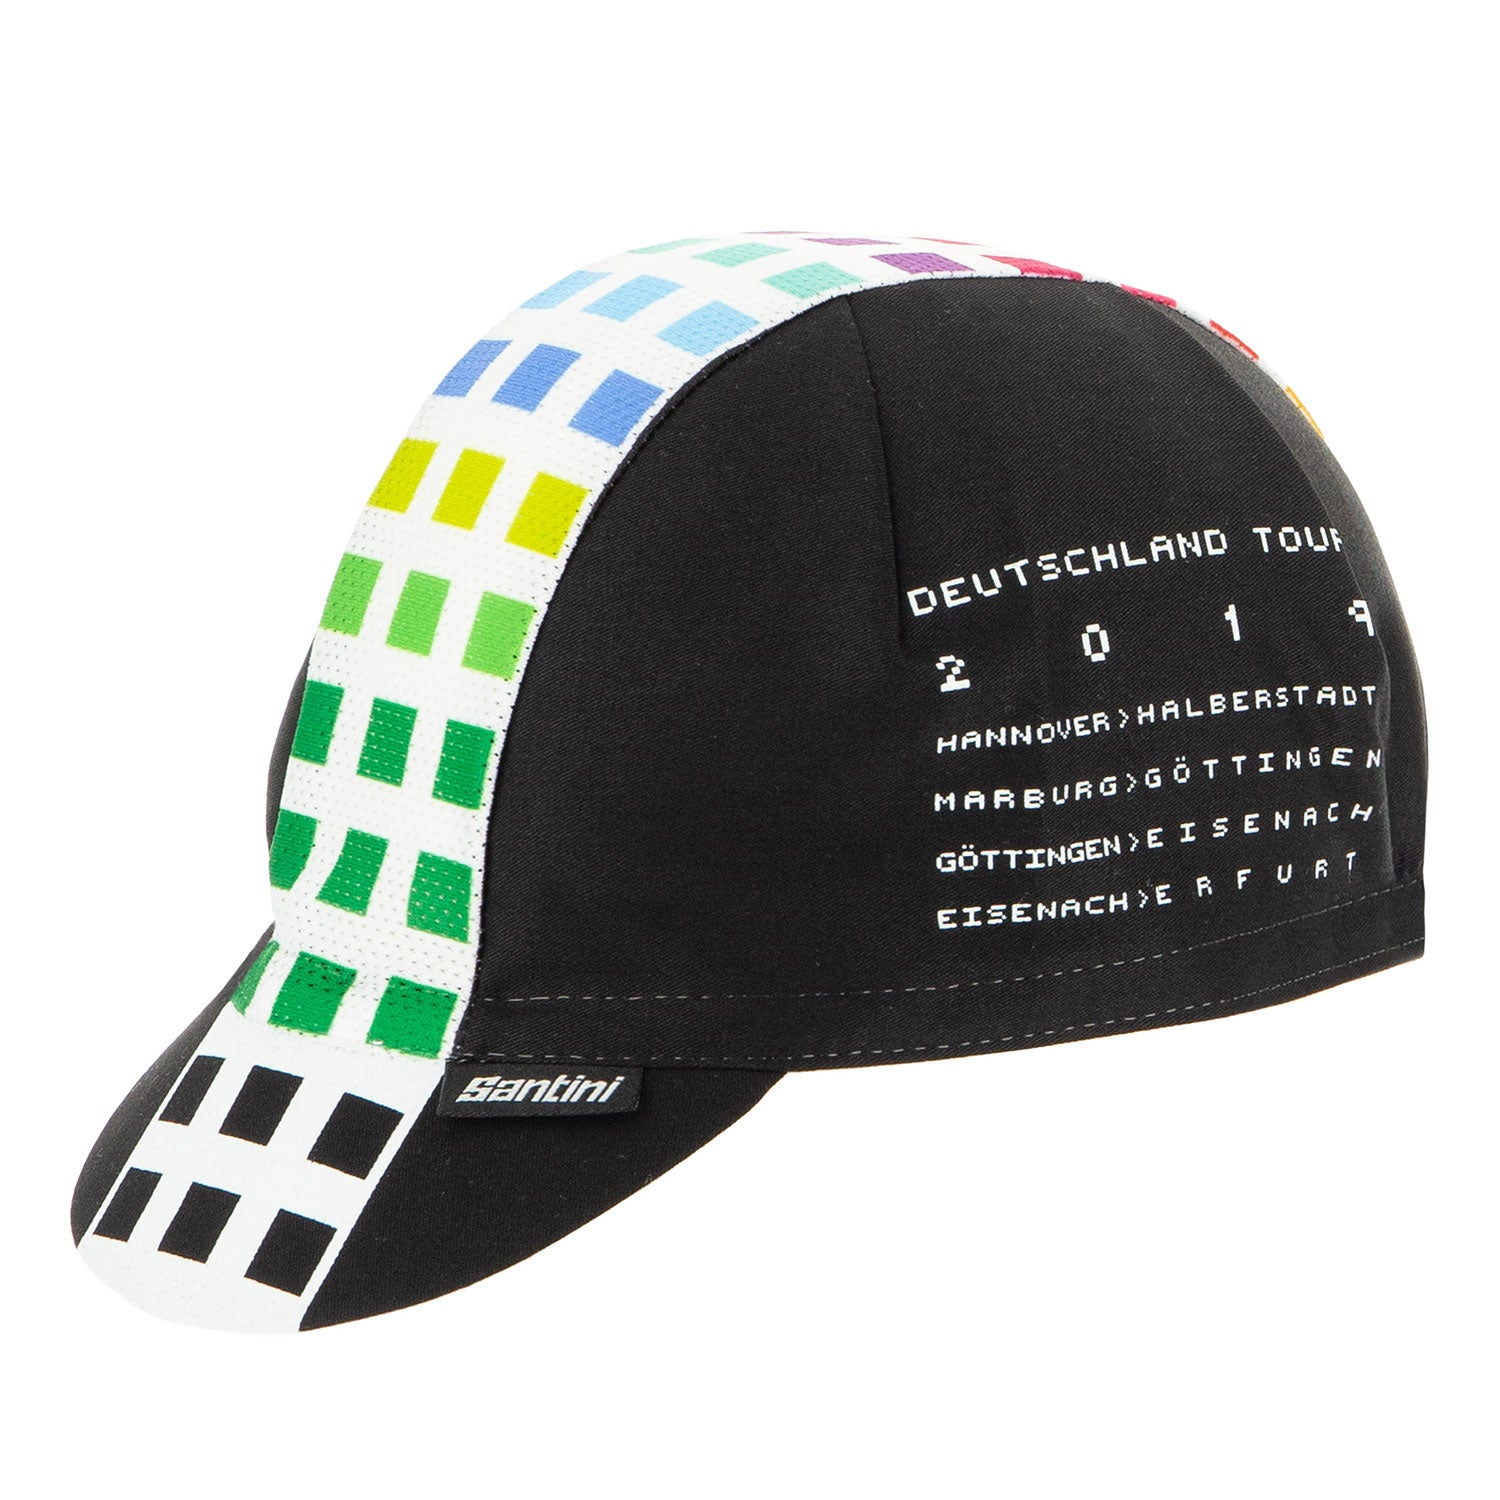 Deutschland Tour 2019 Hannover Cycling Cap